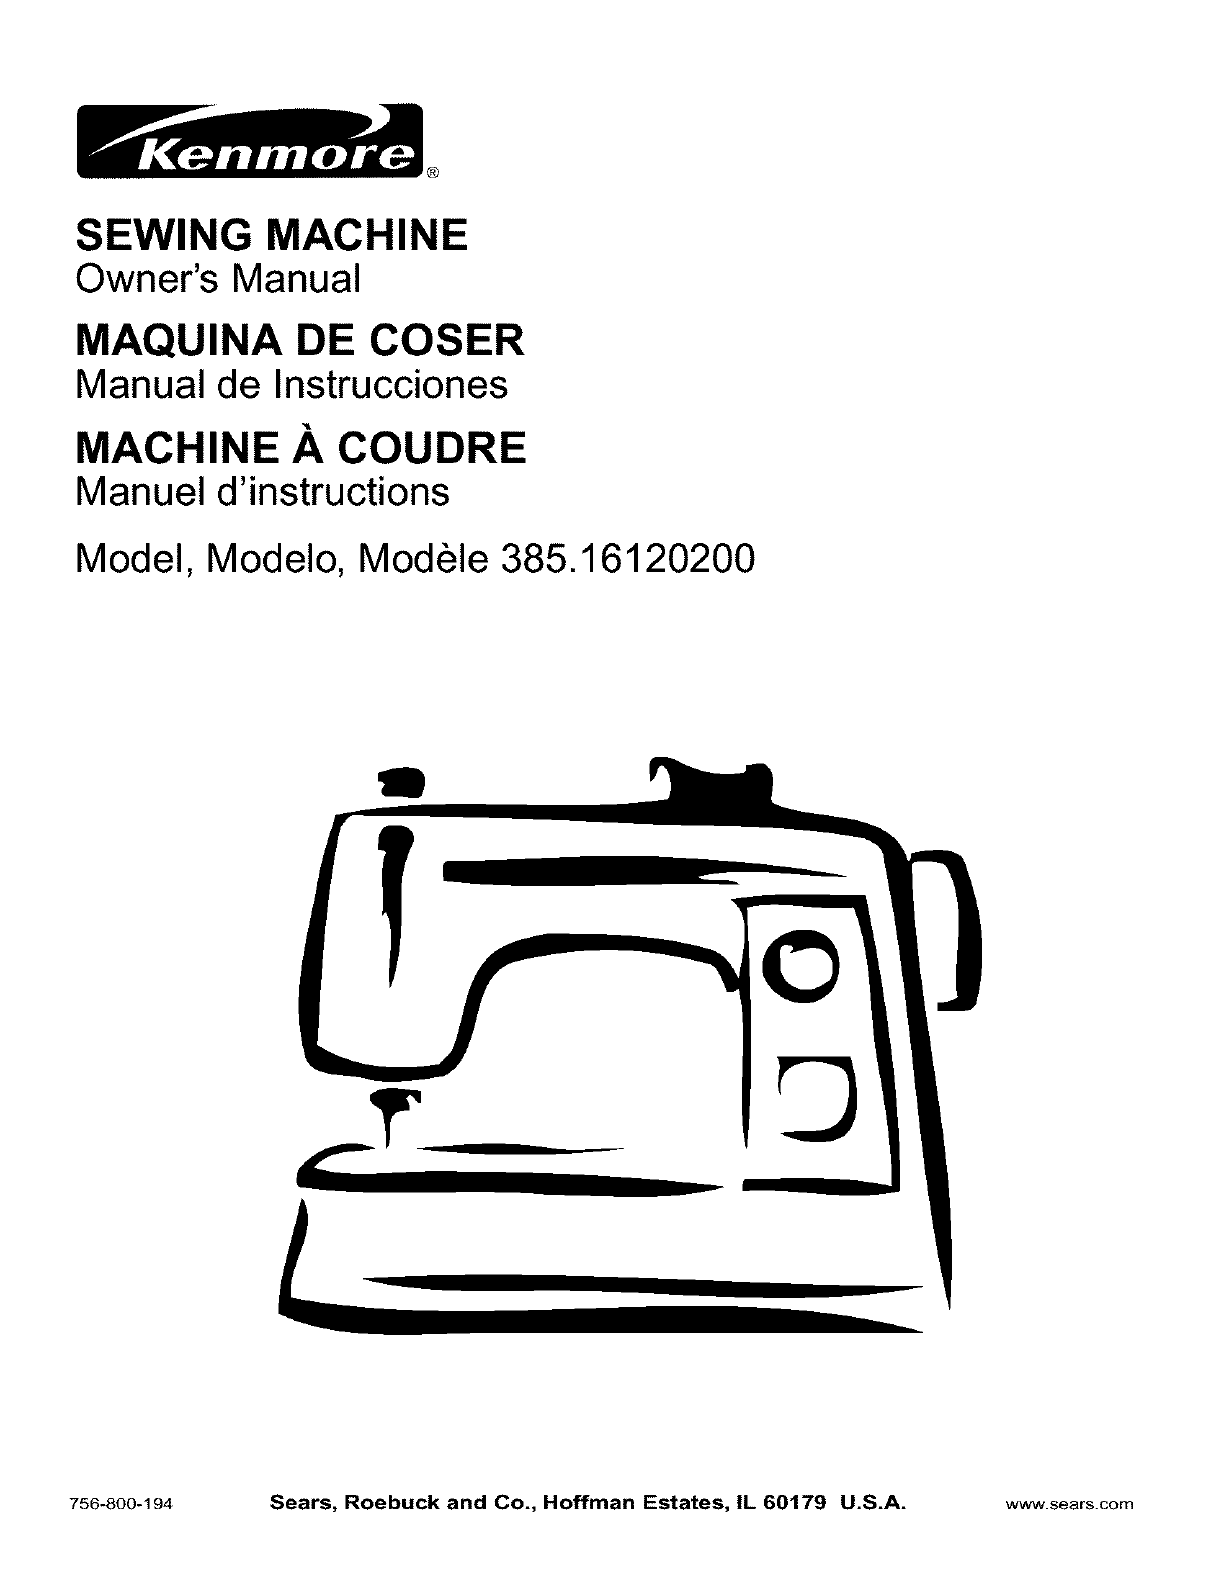 Kenmore Sewing Machine 385.16120200 User Guide